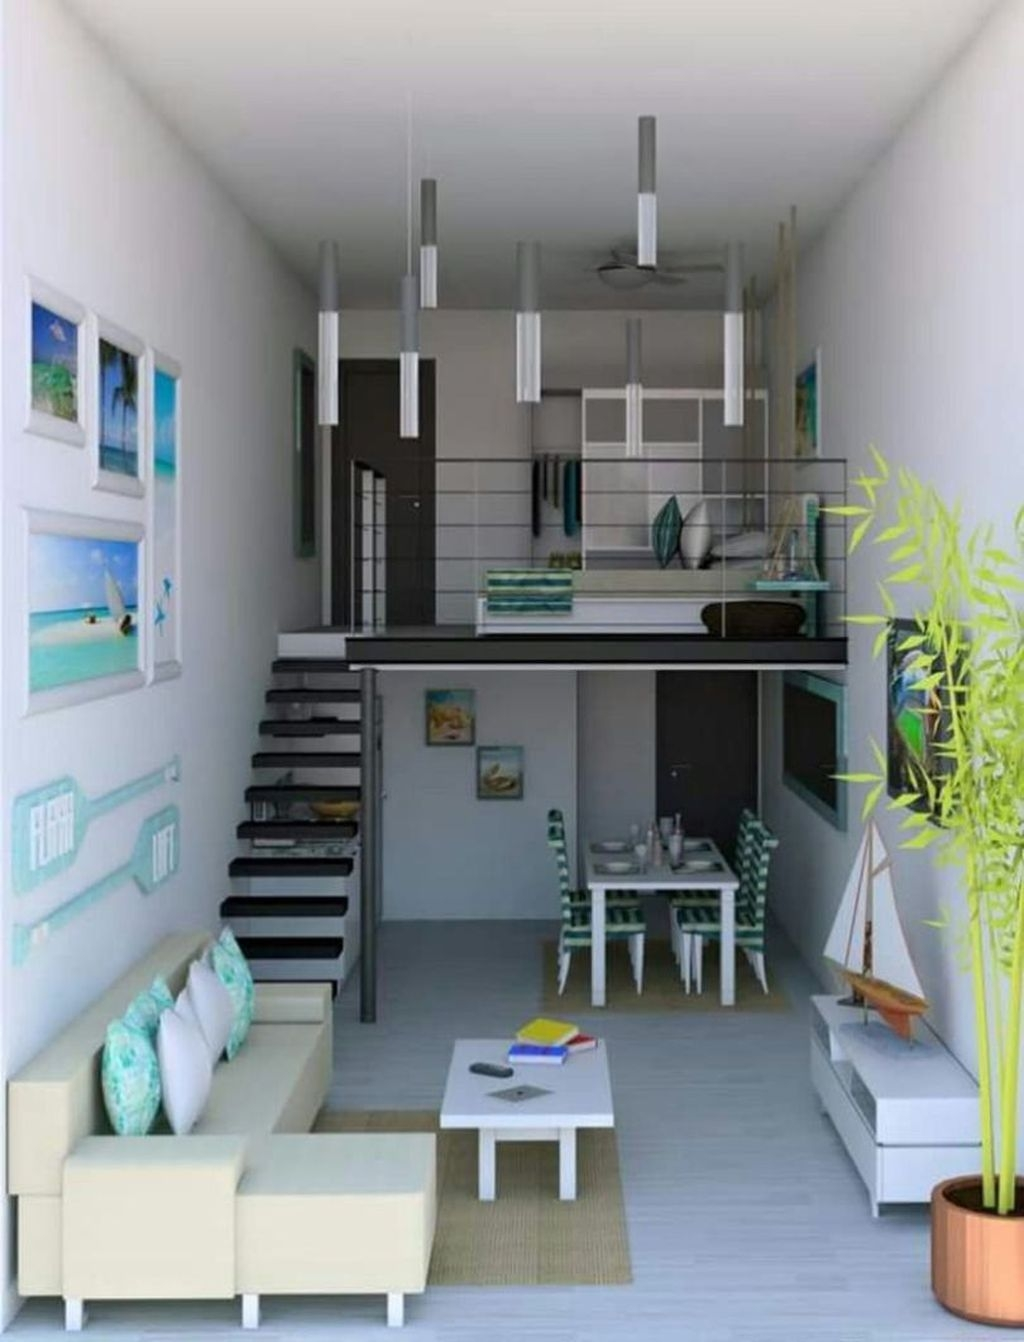 Stunning Tiny House Design Ideas 41